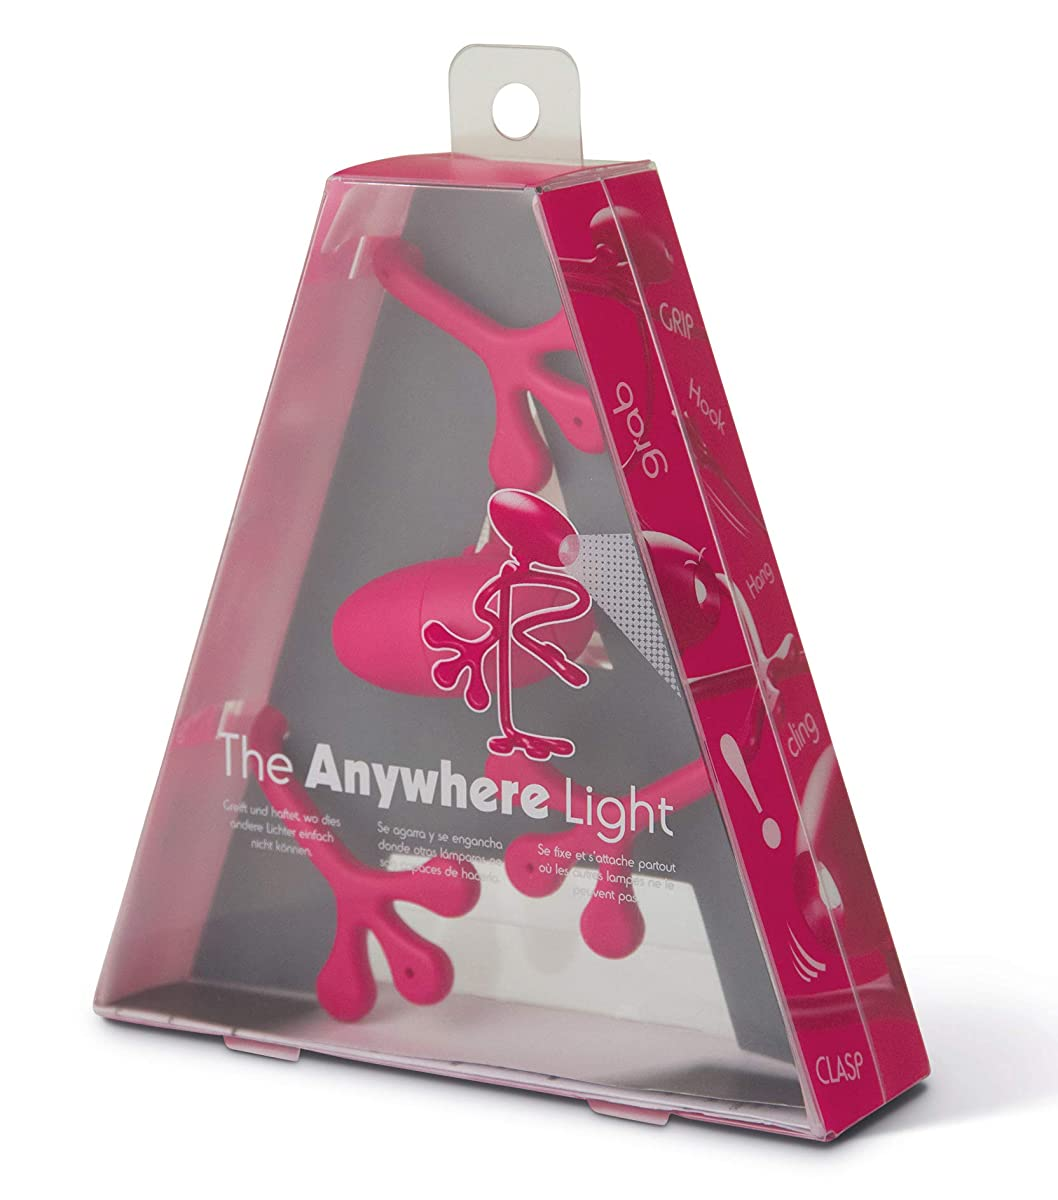 That Company Called If The Anywhere Light - Posable LED Reading Work Book Light - Pink